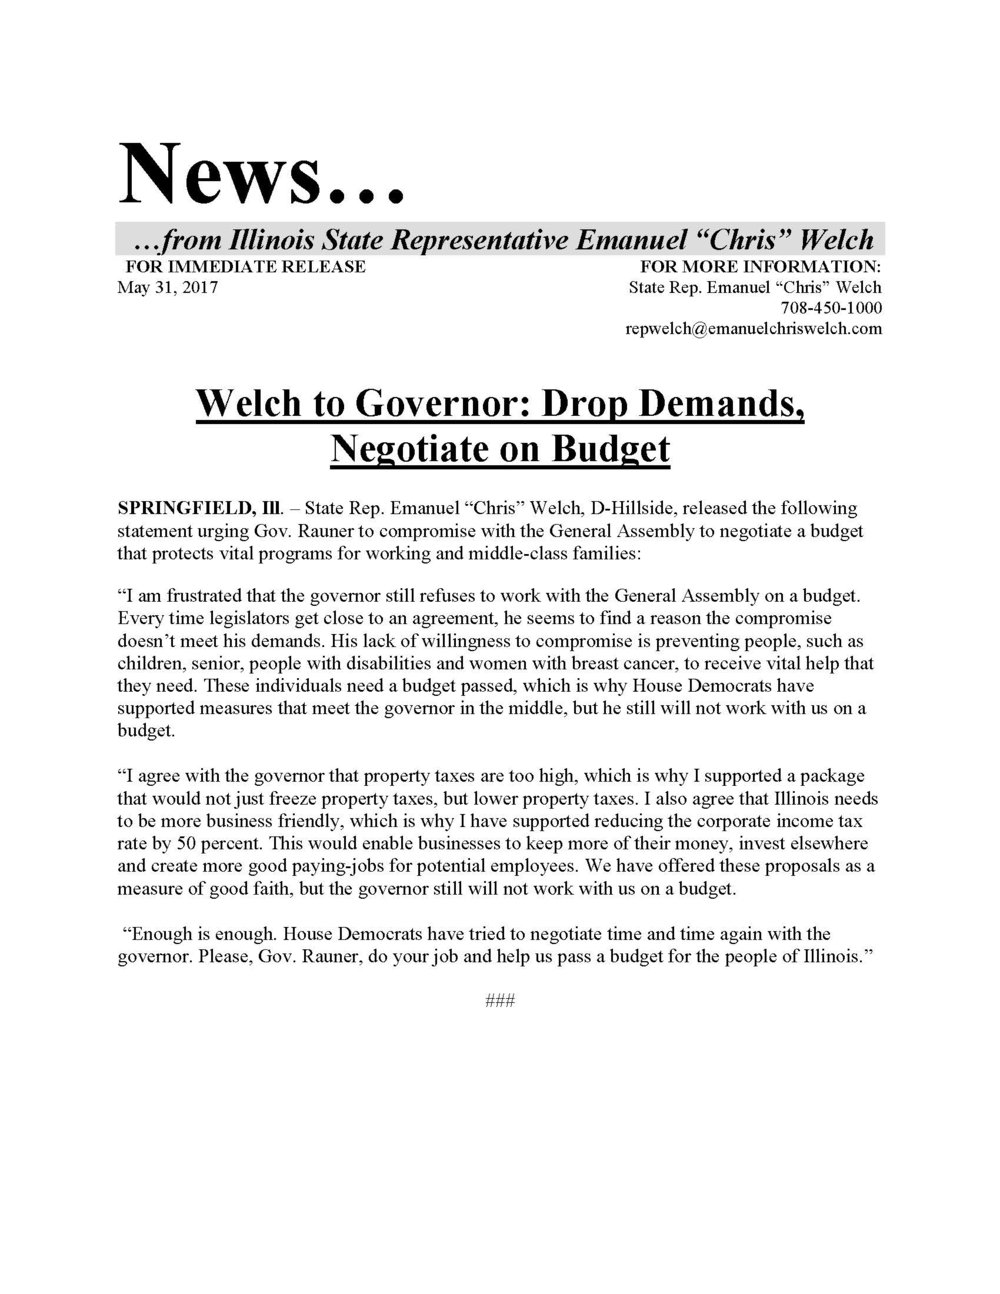 Welch to Governor: Drop Demands, Negotiate on Budget  (May 31, 2017)